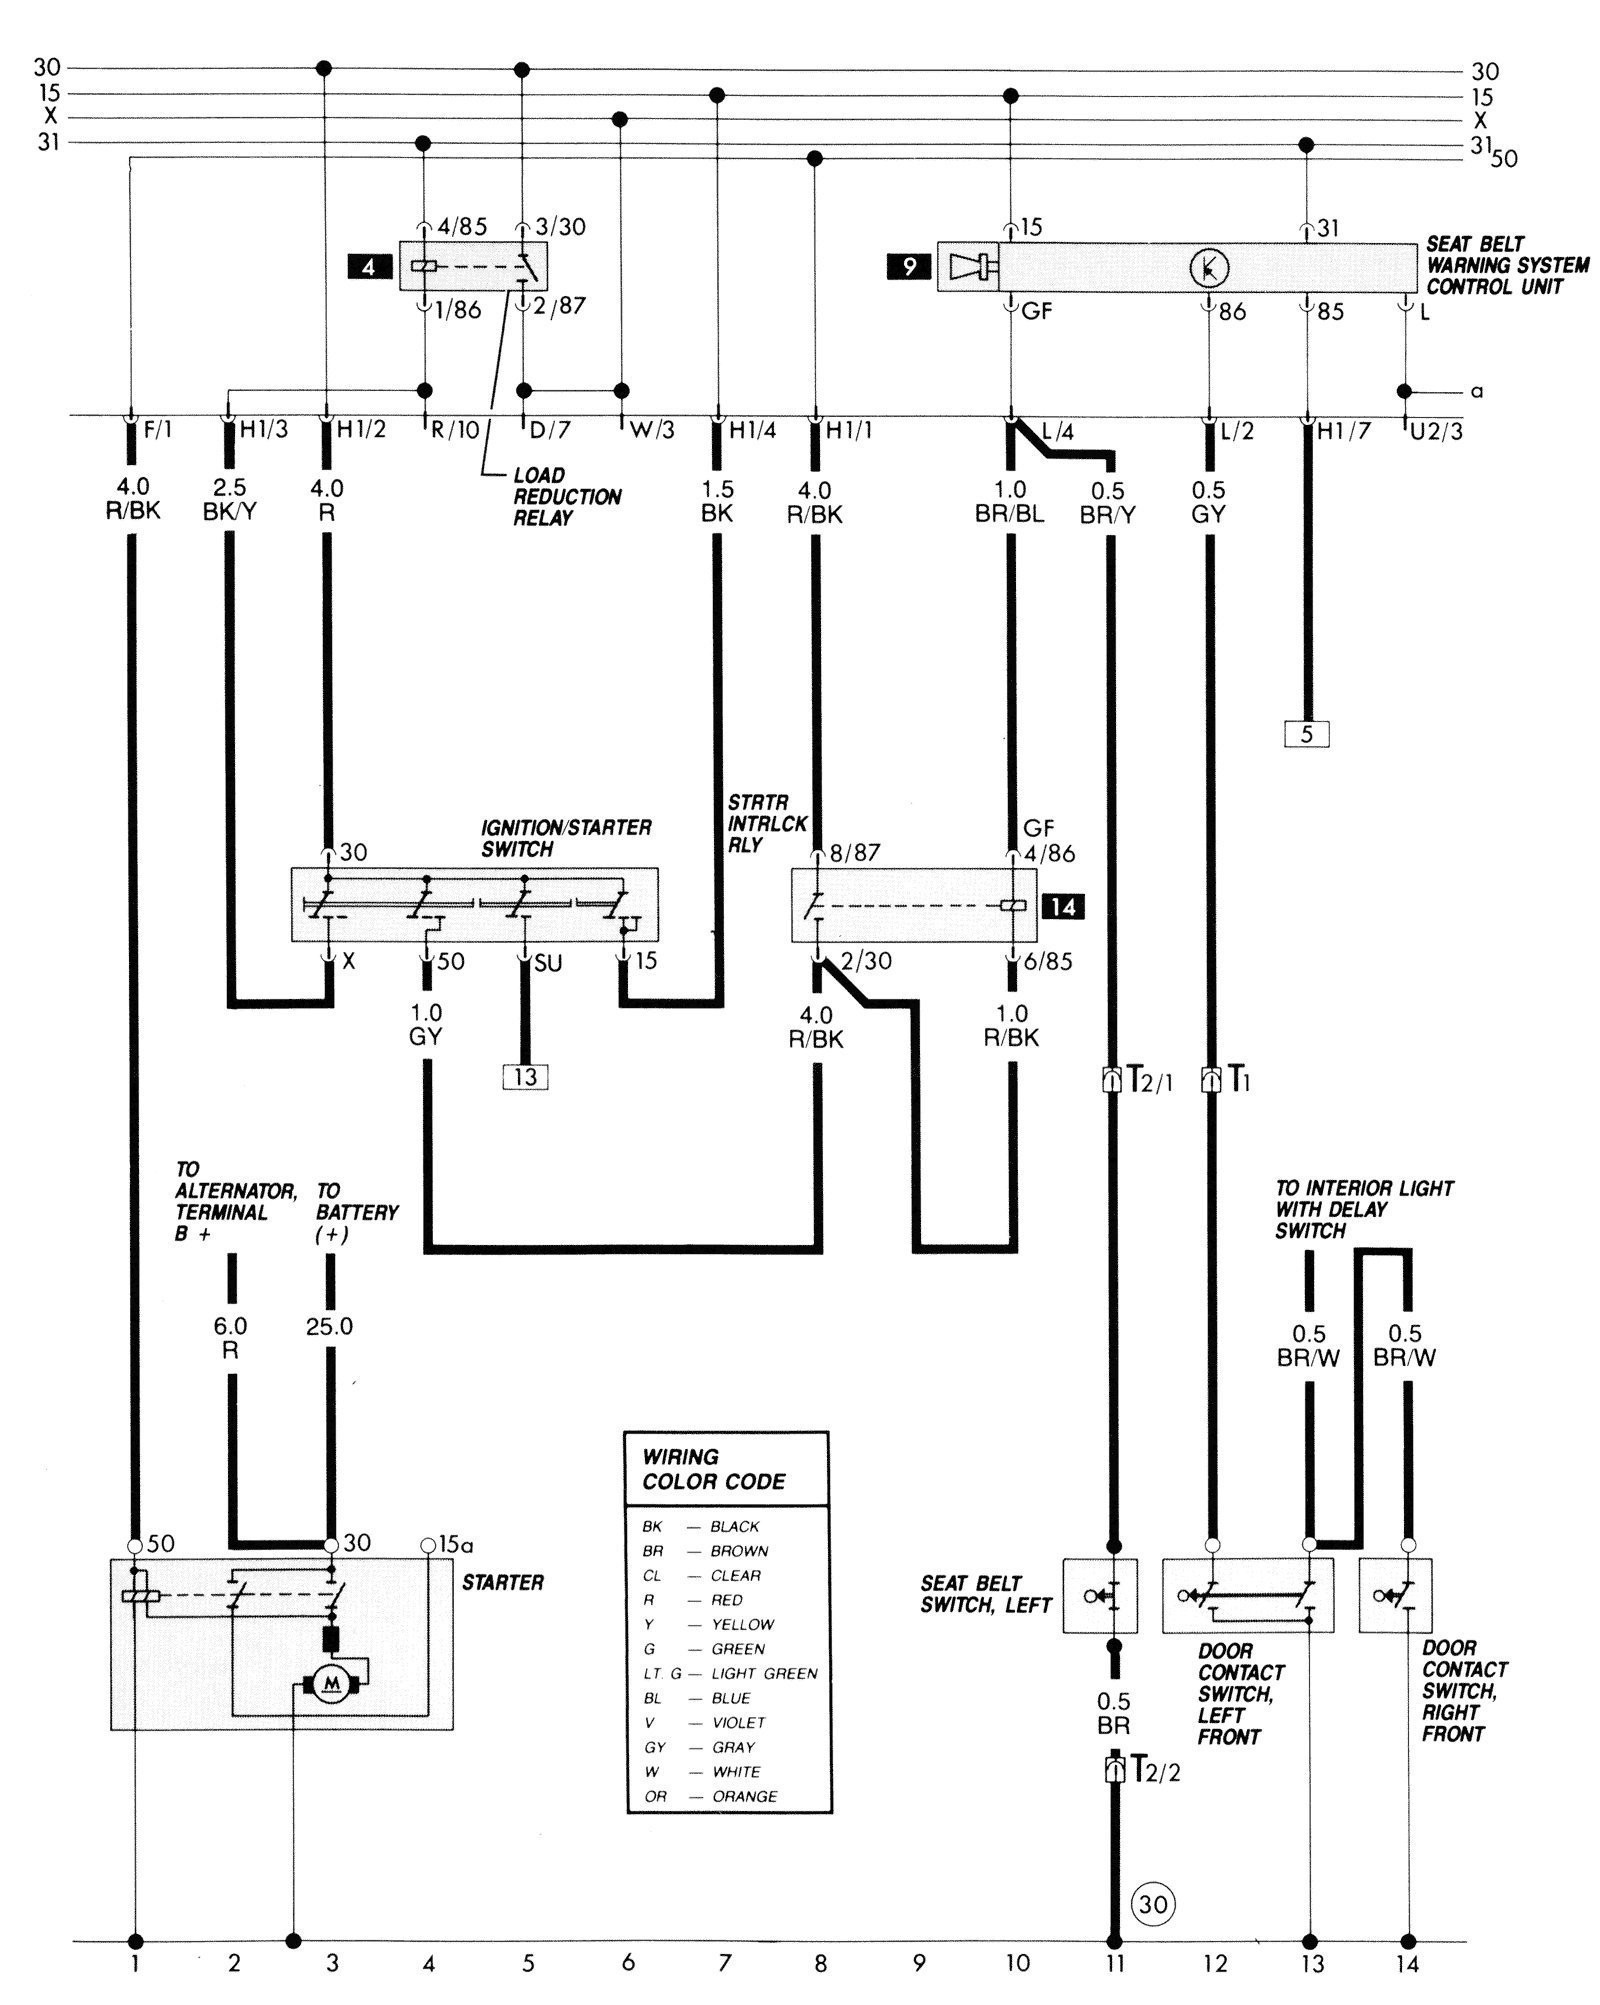 97 pat tdi wiring diagram wiring diagram b7